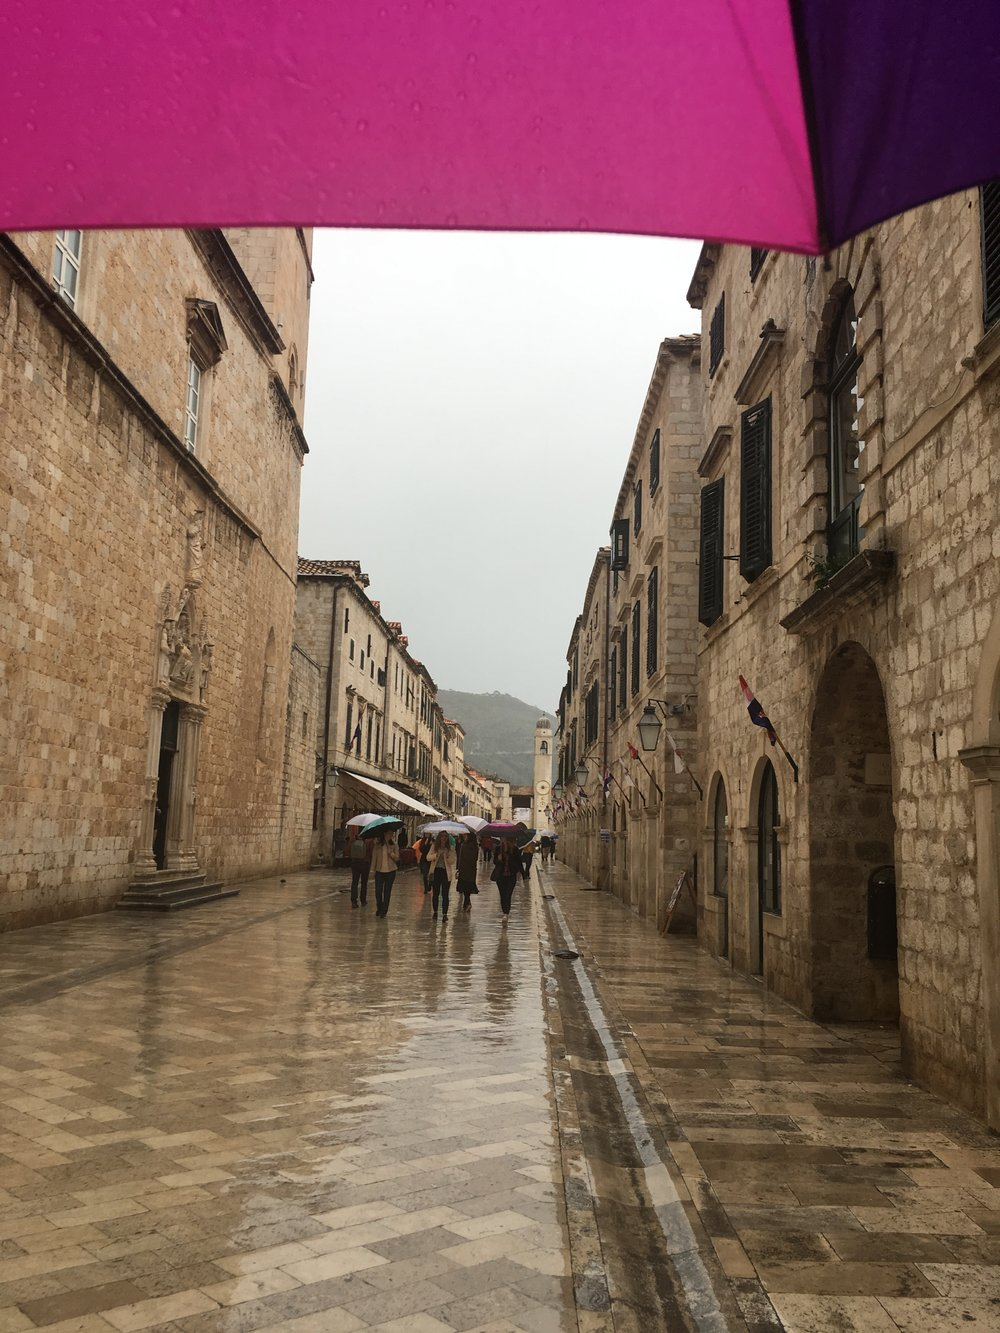 The wet, slippery streets of Dubrovnik - a small umbrella is very useful for Croatia's temperamental weather!